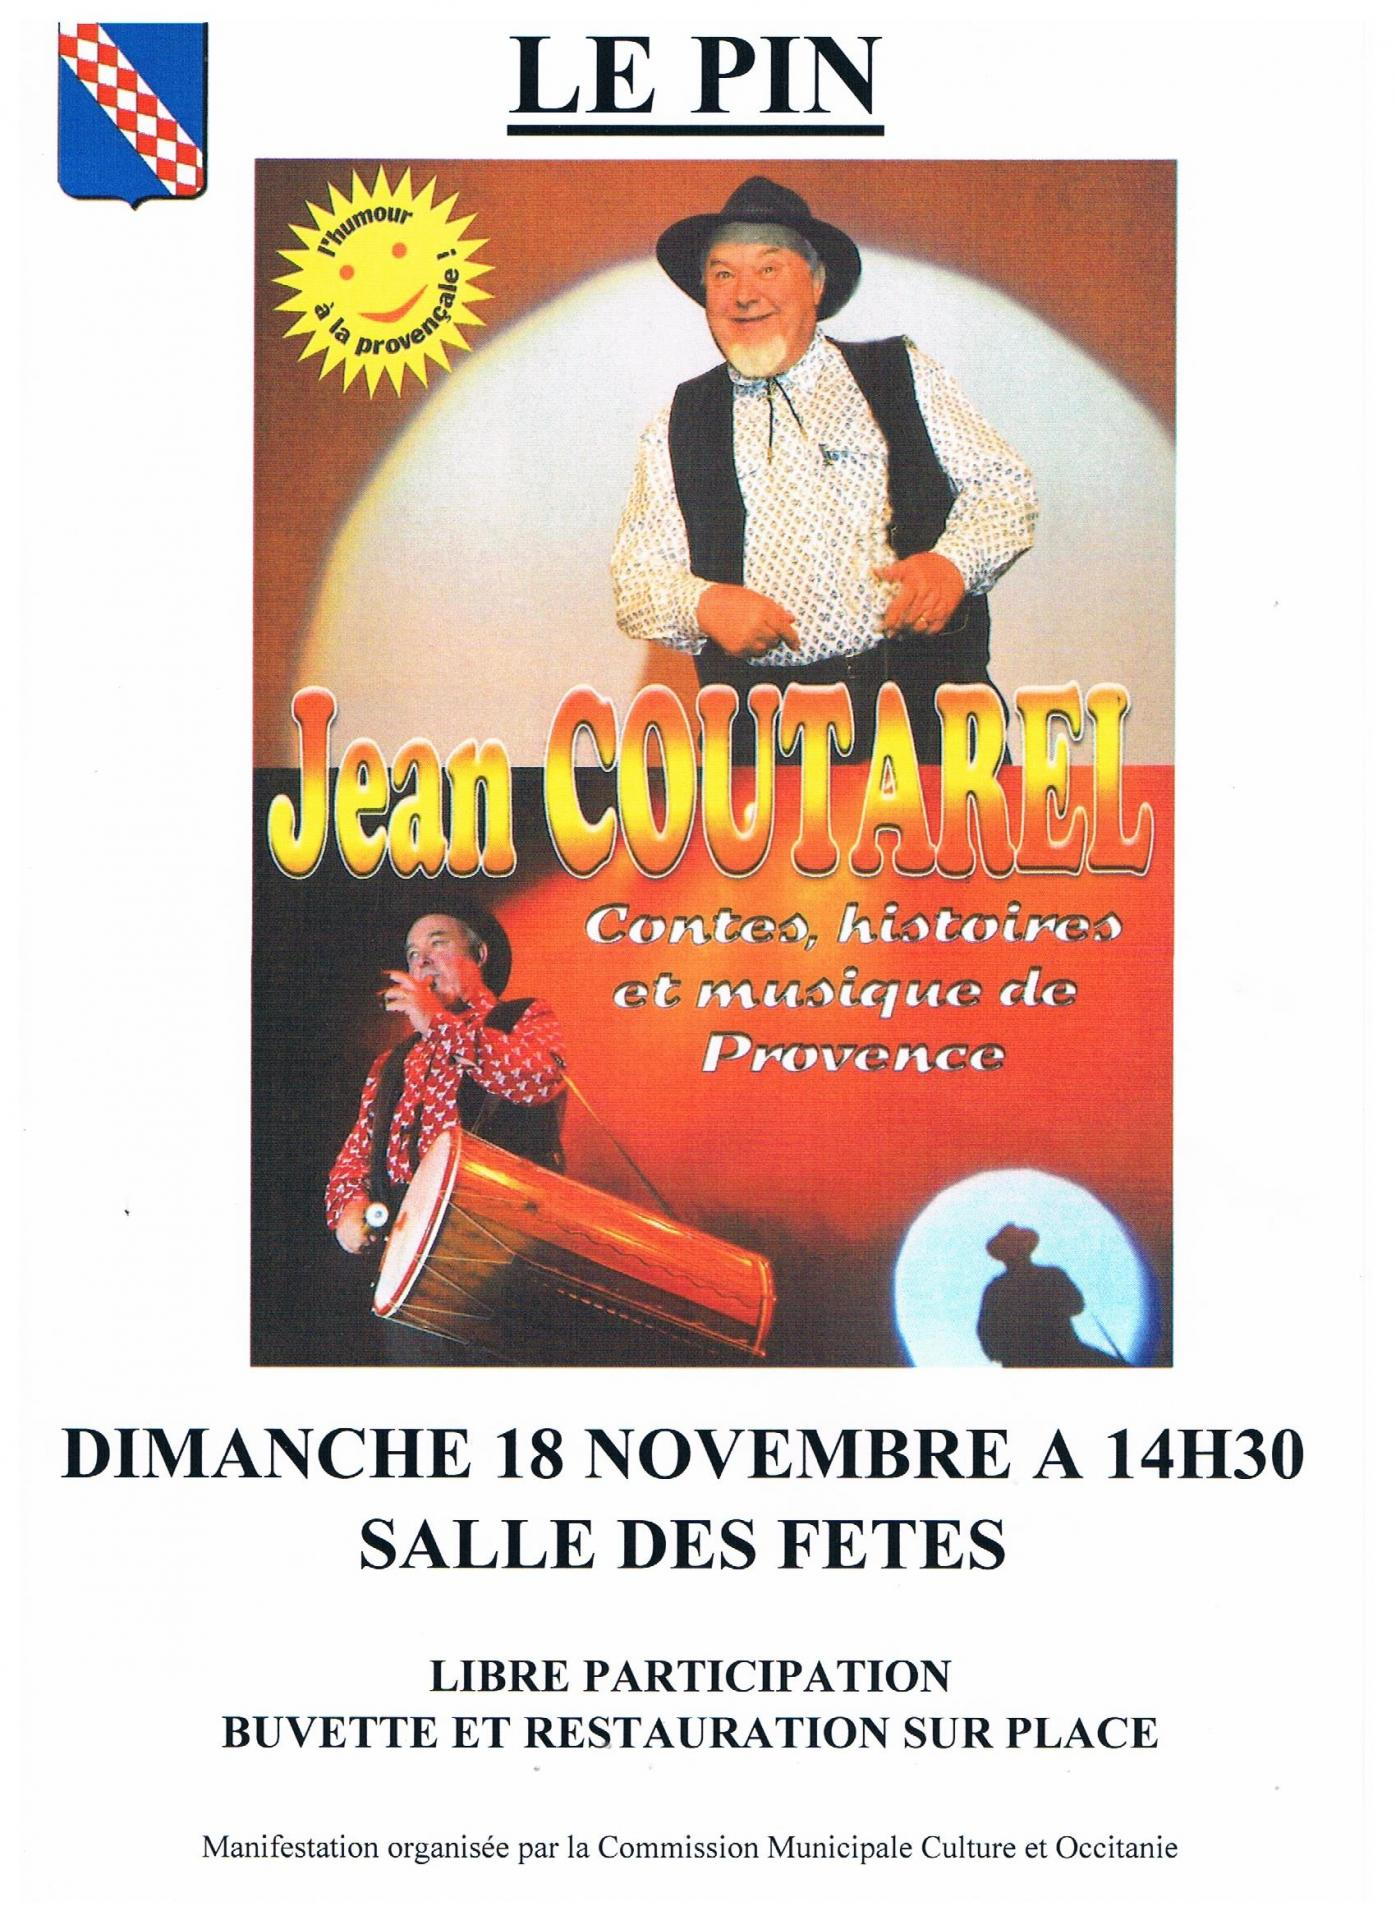 Spectacle jean coutarel 002